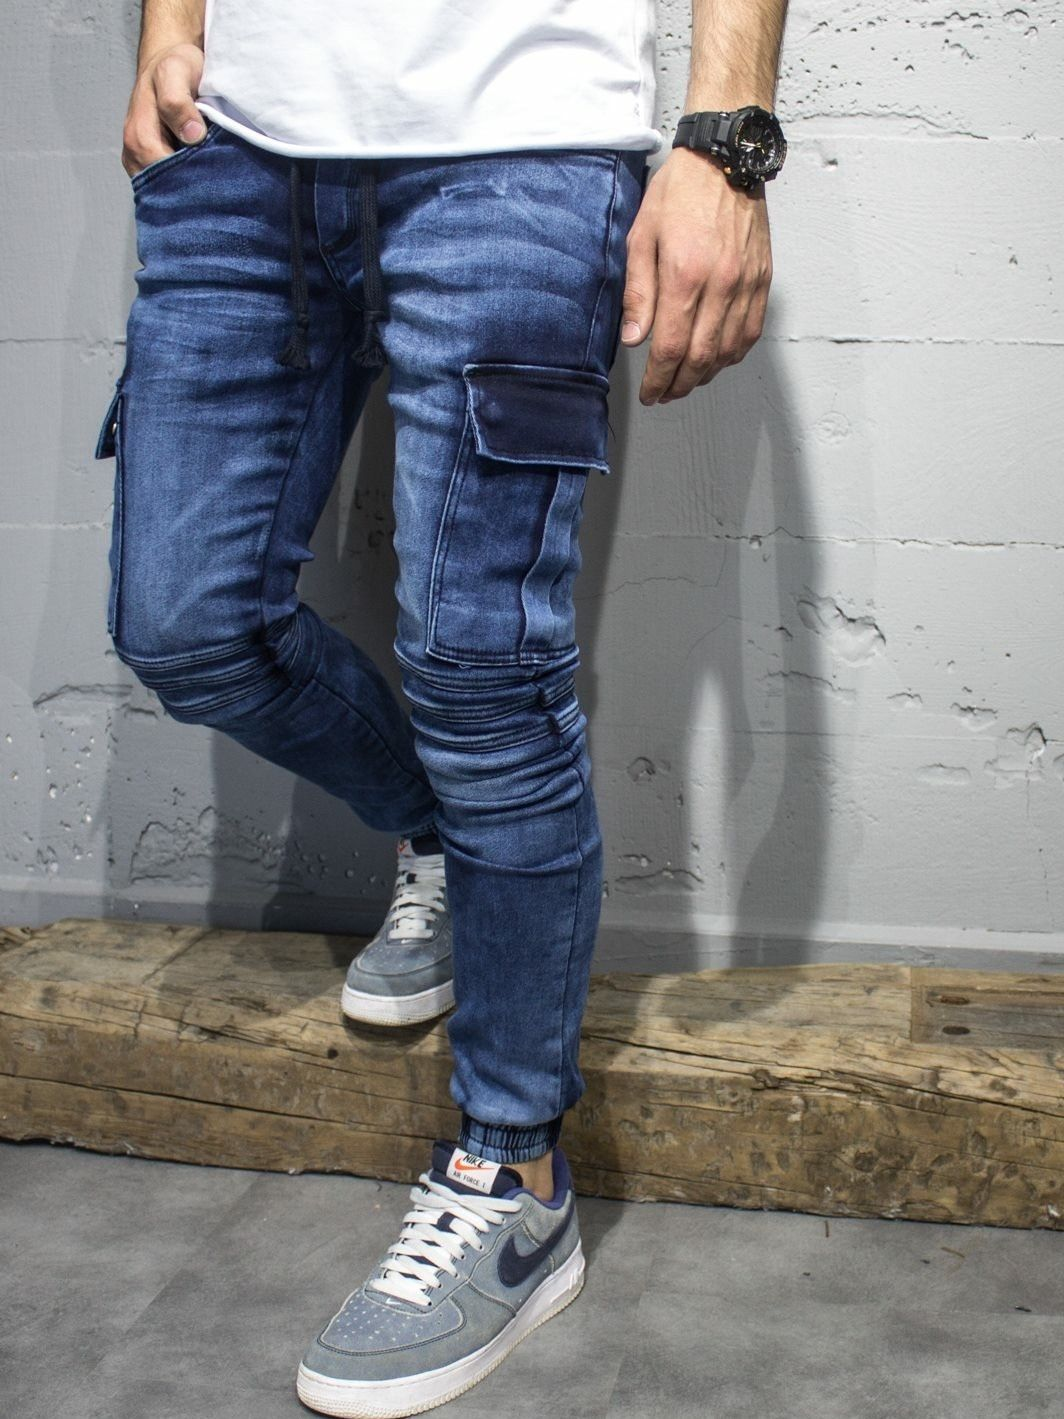 Search by your favourite jean, chino and jogger fits right here - whether that's a classic bootcut or a contemporary skinny. Buy Jeans stock a great breadth of colours, looks, brands and styles, so click here to discover your new favourite bottoms.